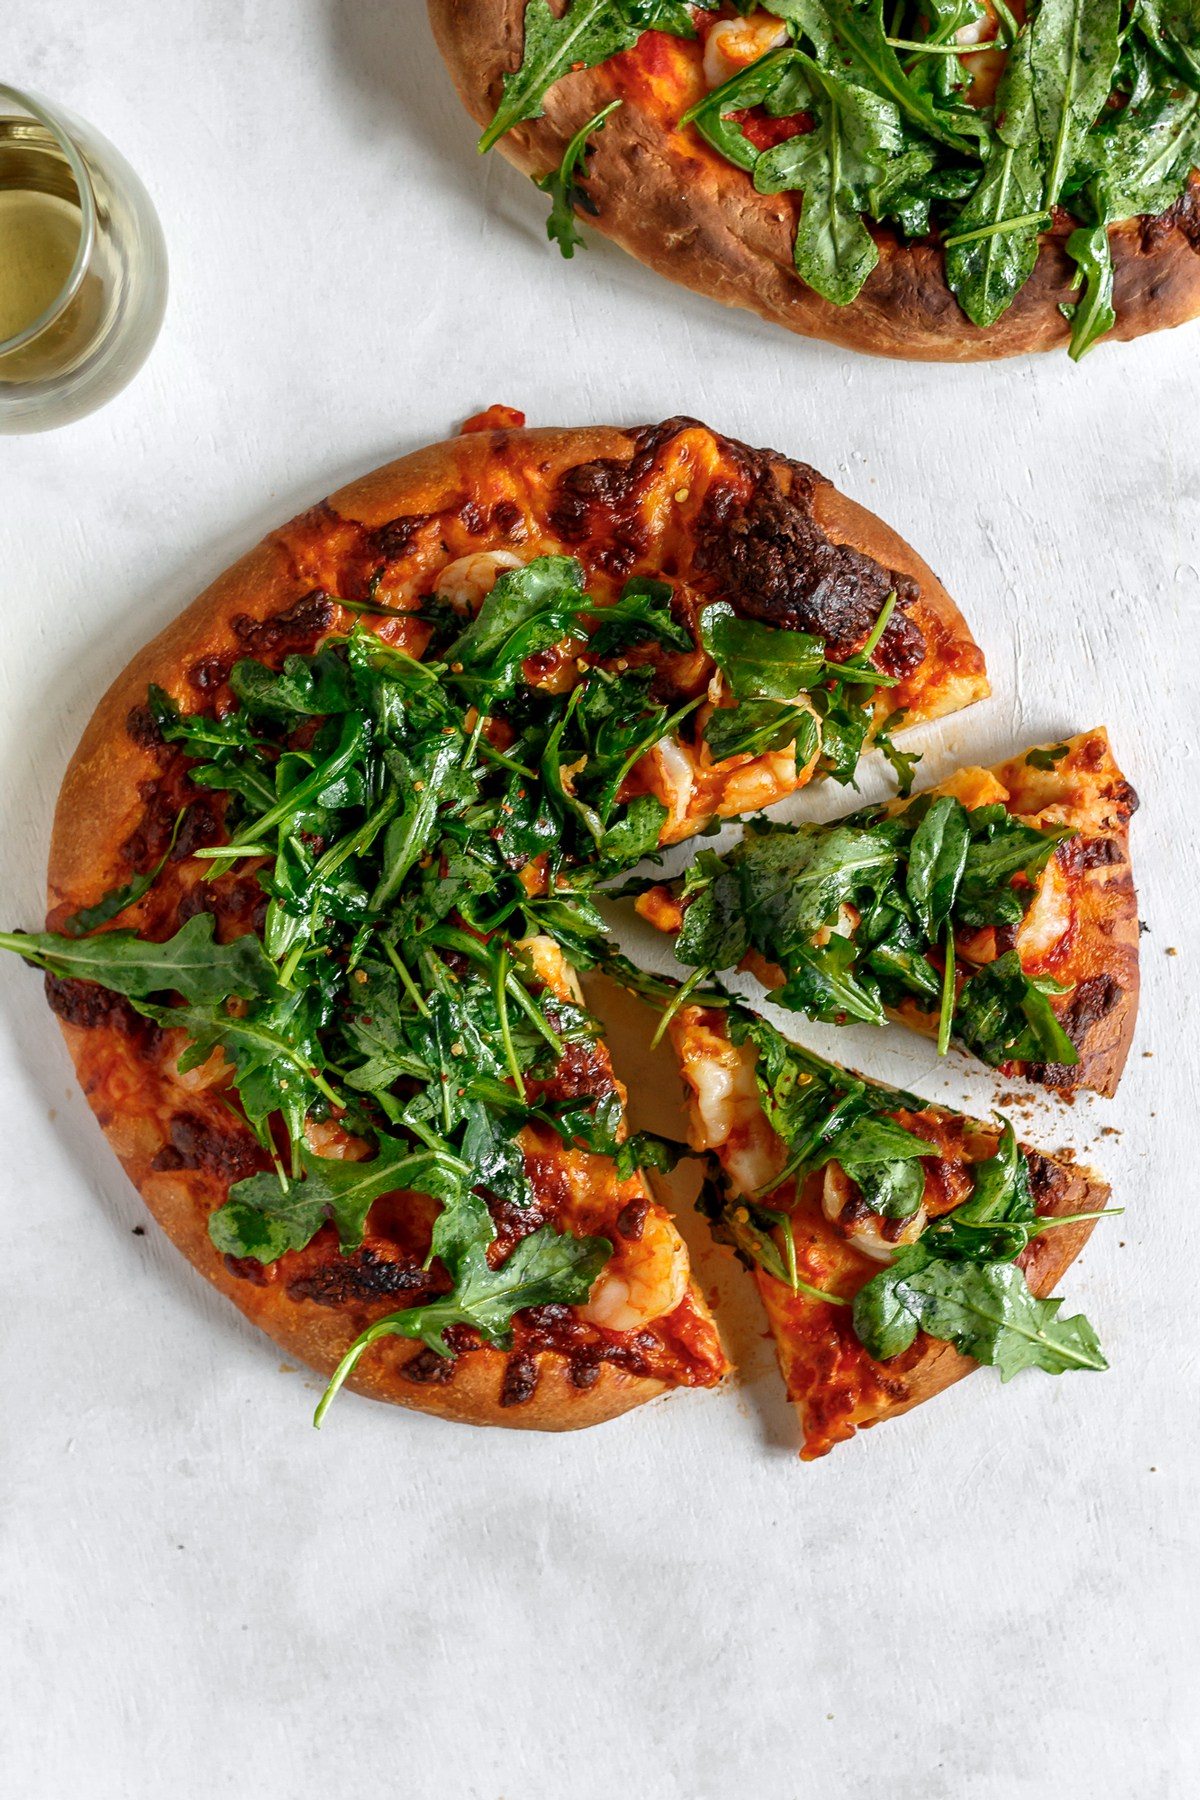 @bakedambrosia's cover photo for 'Shrimp and Arugula Pizza - Baked Ambrosia'